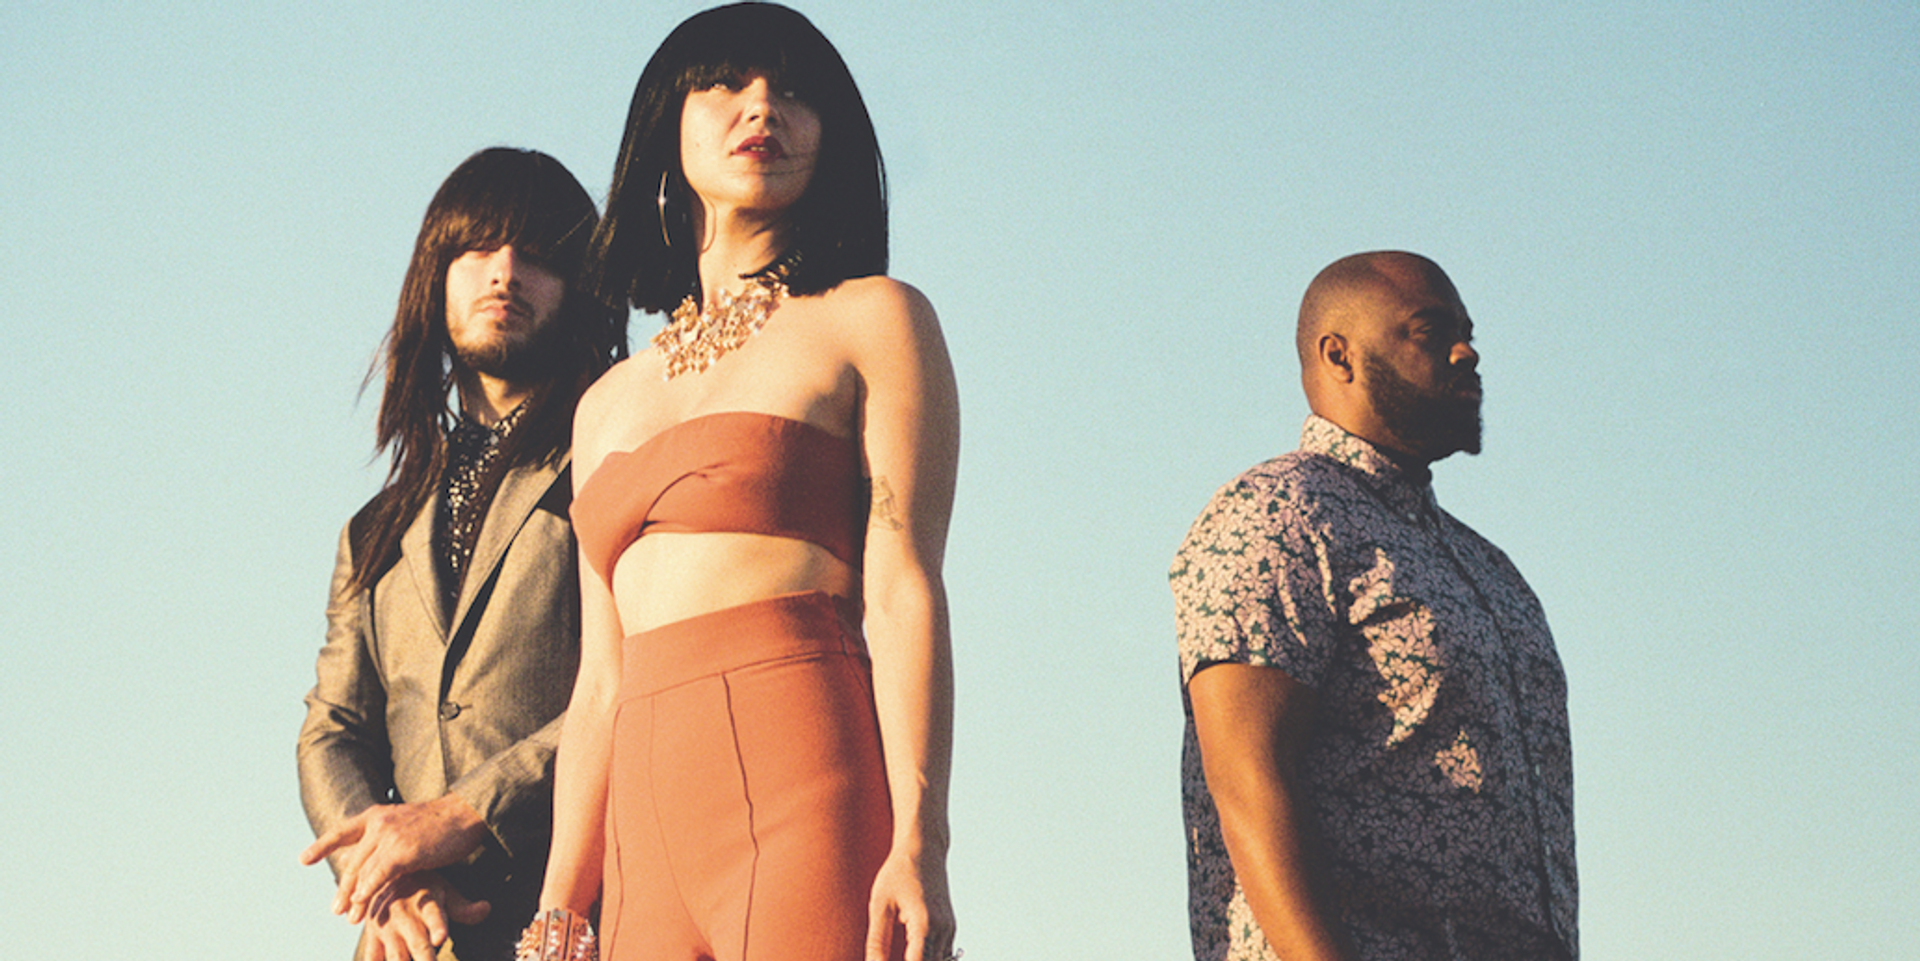 Psych-funk trio Khruangbin to perform in Singapore